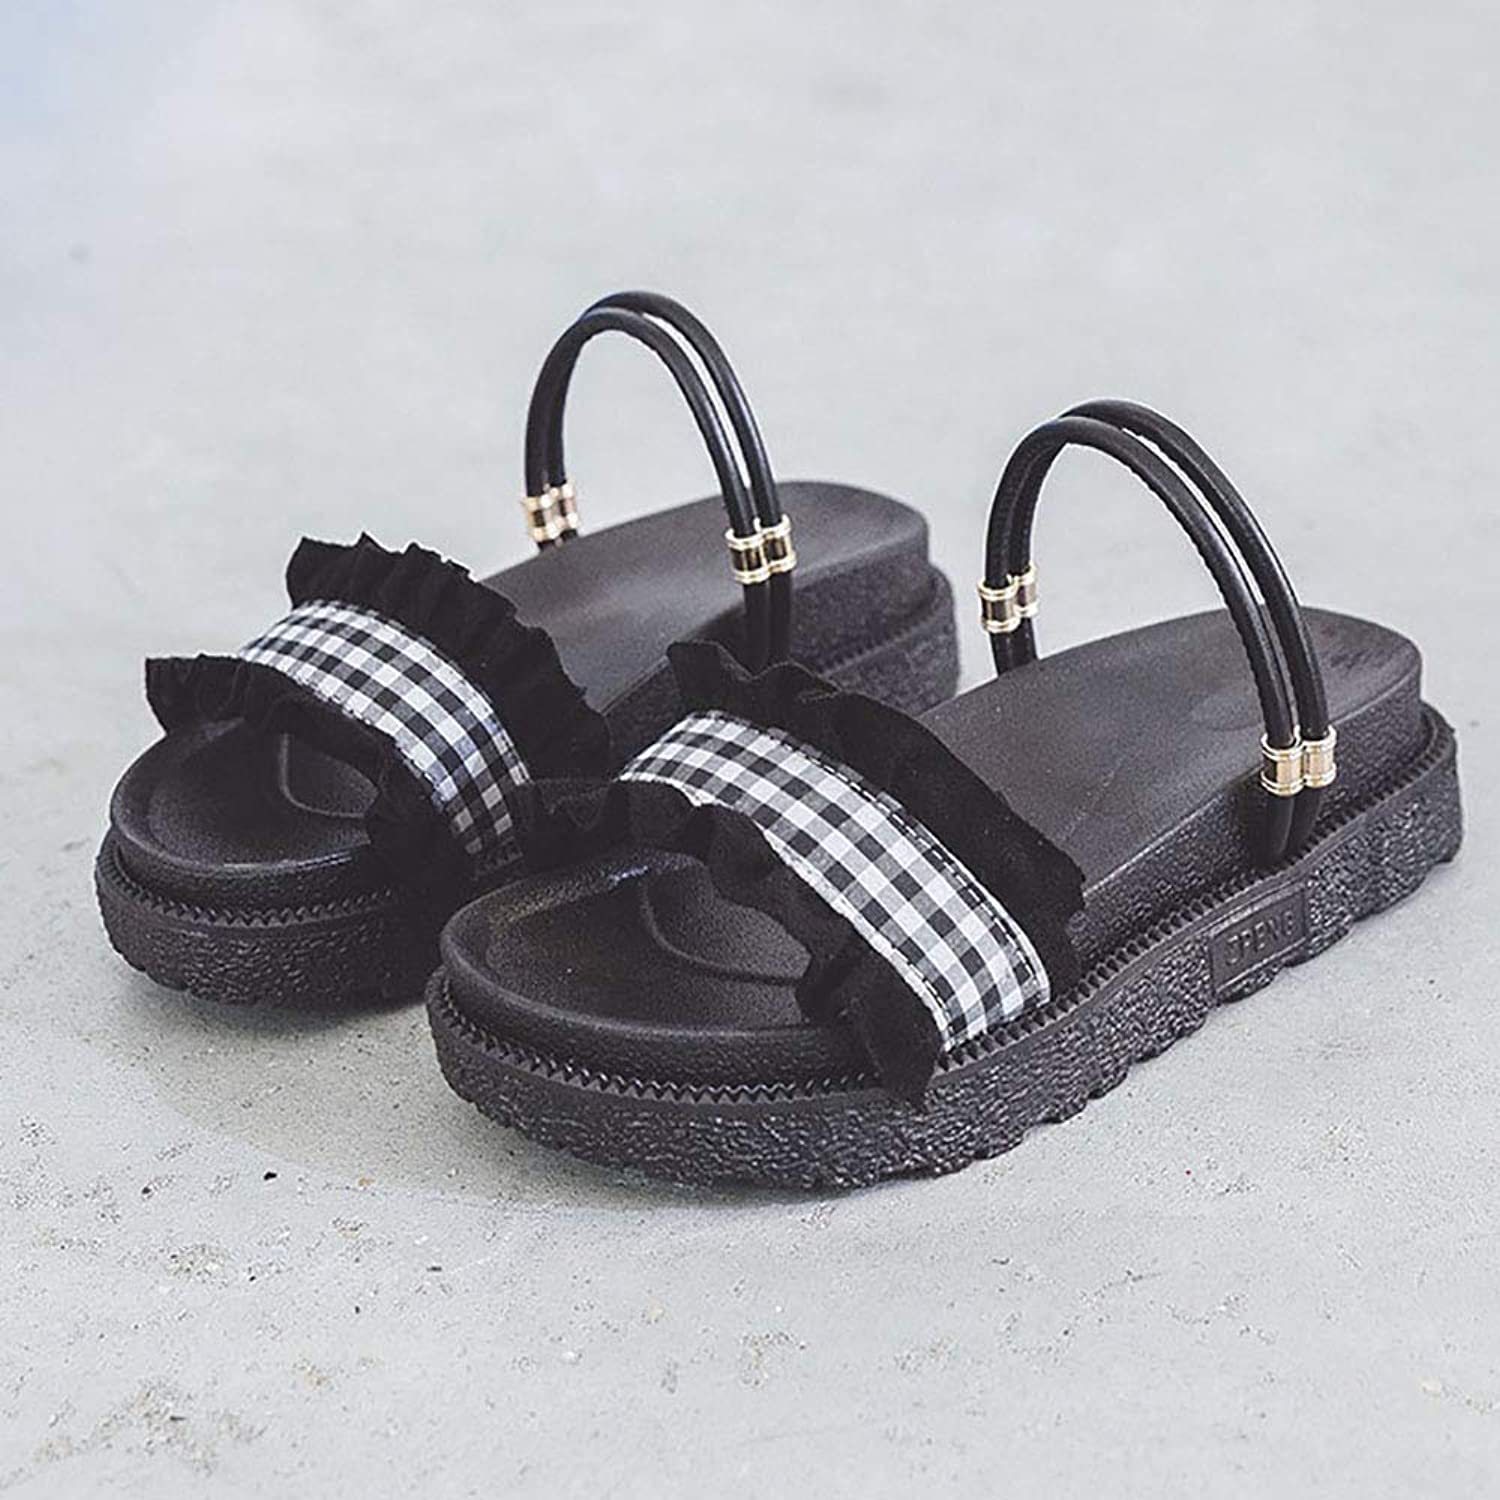 Sandals for Women, Gladiator Sandals for Women Platform Sandals Good Looking shoes in Two Ways to wear Comfortable Ruffled Flats shoes